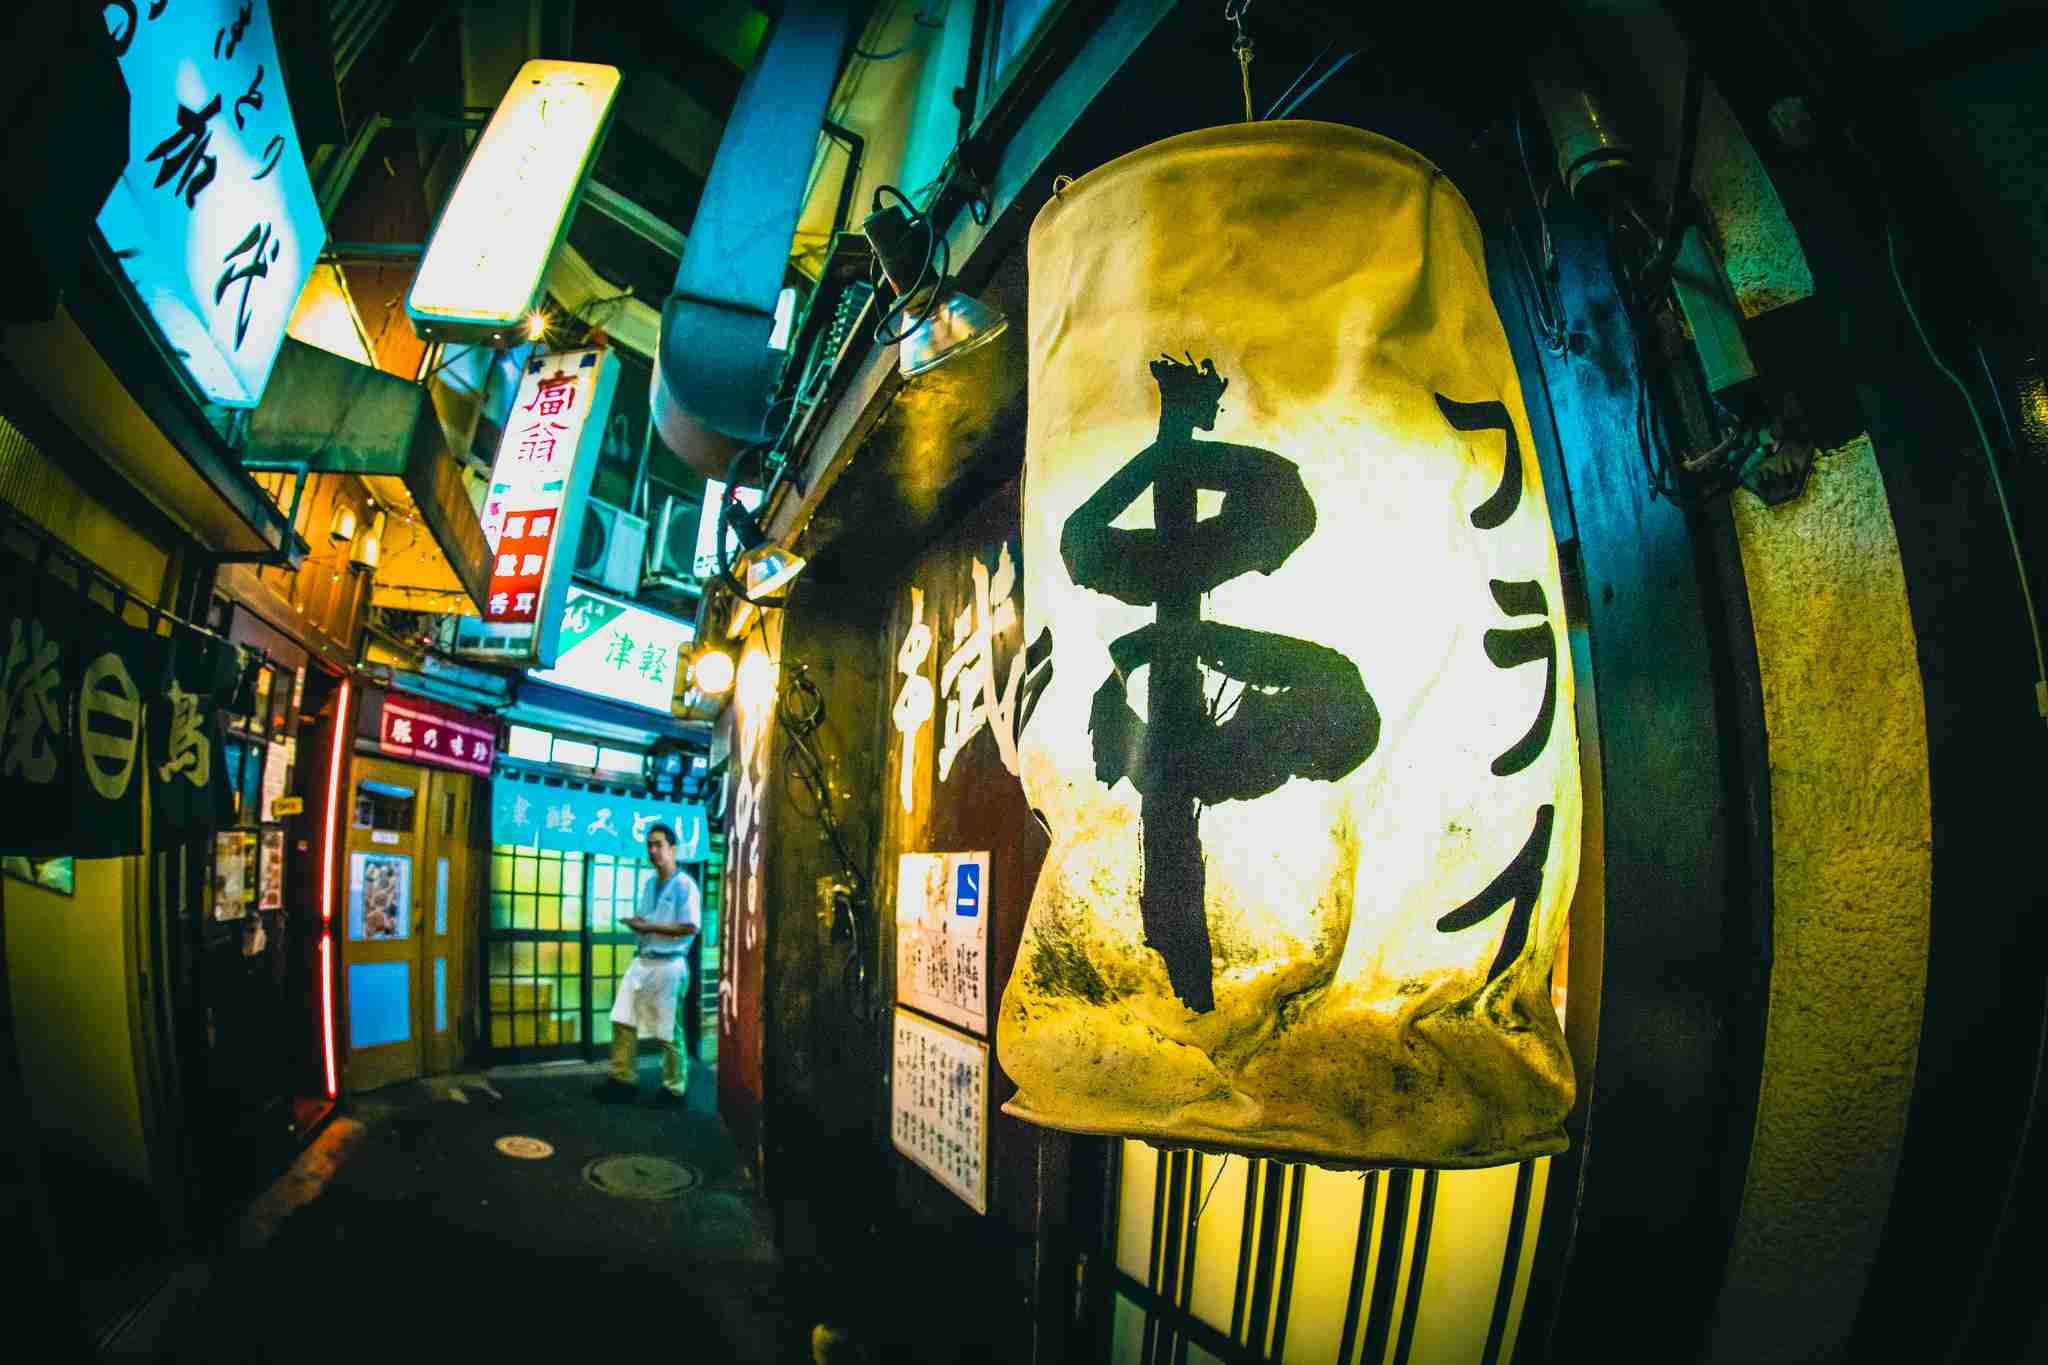 Finding a place to eat in Japan can be intimidating. Don